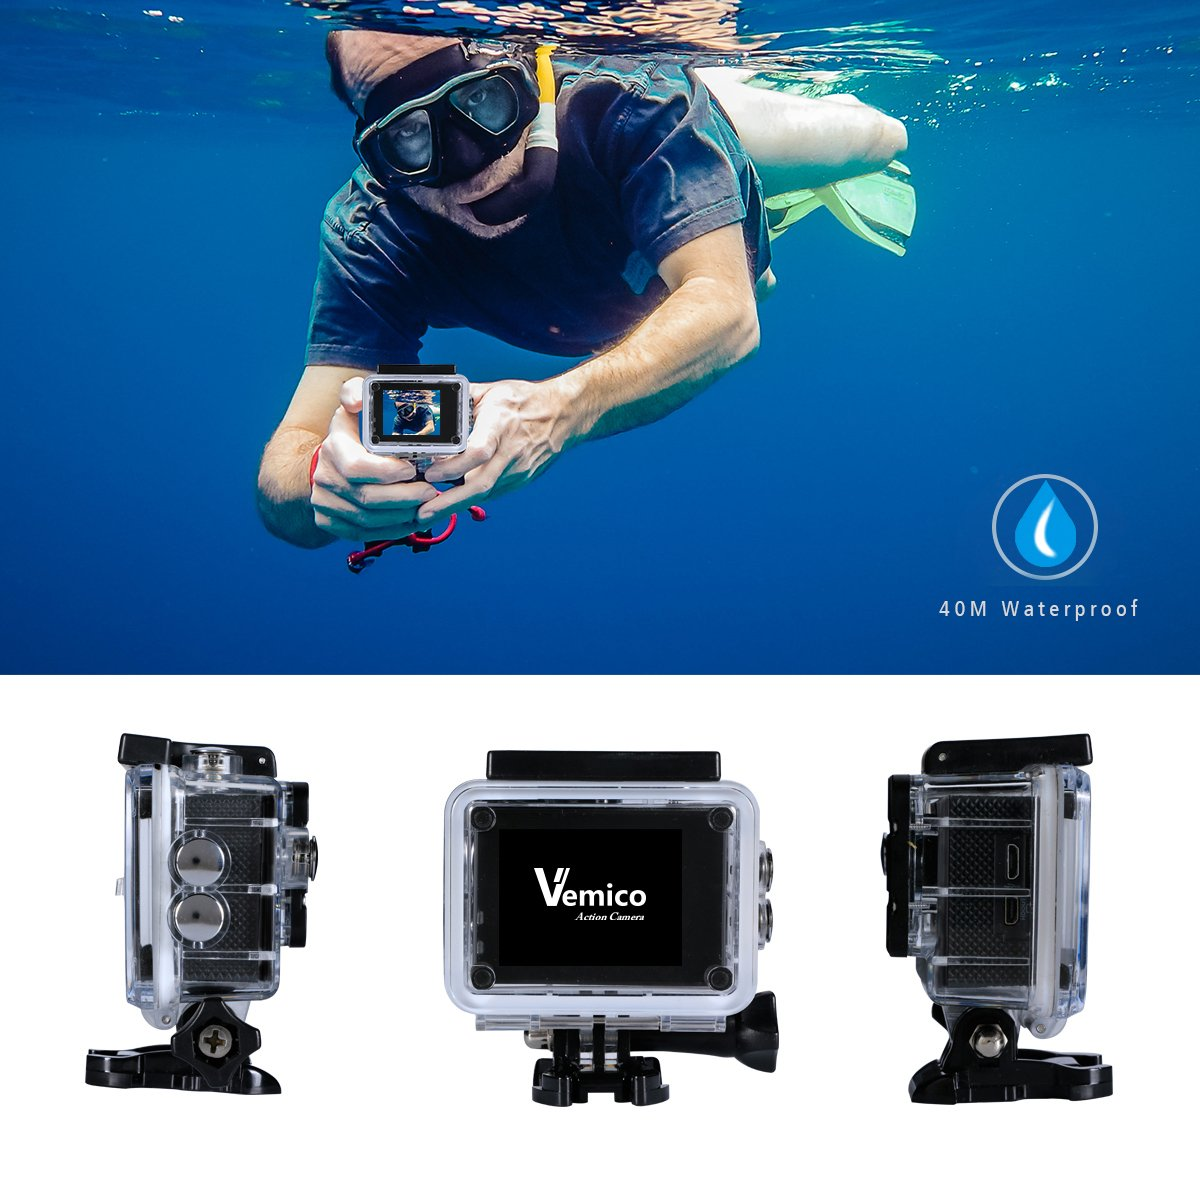 Amazon.com: Vemico Action Camera 4K WIFI Full HD 1080P Waterproof ...